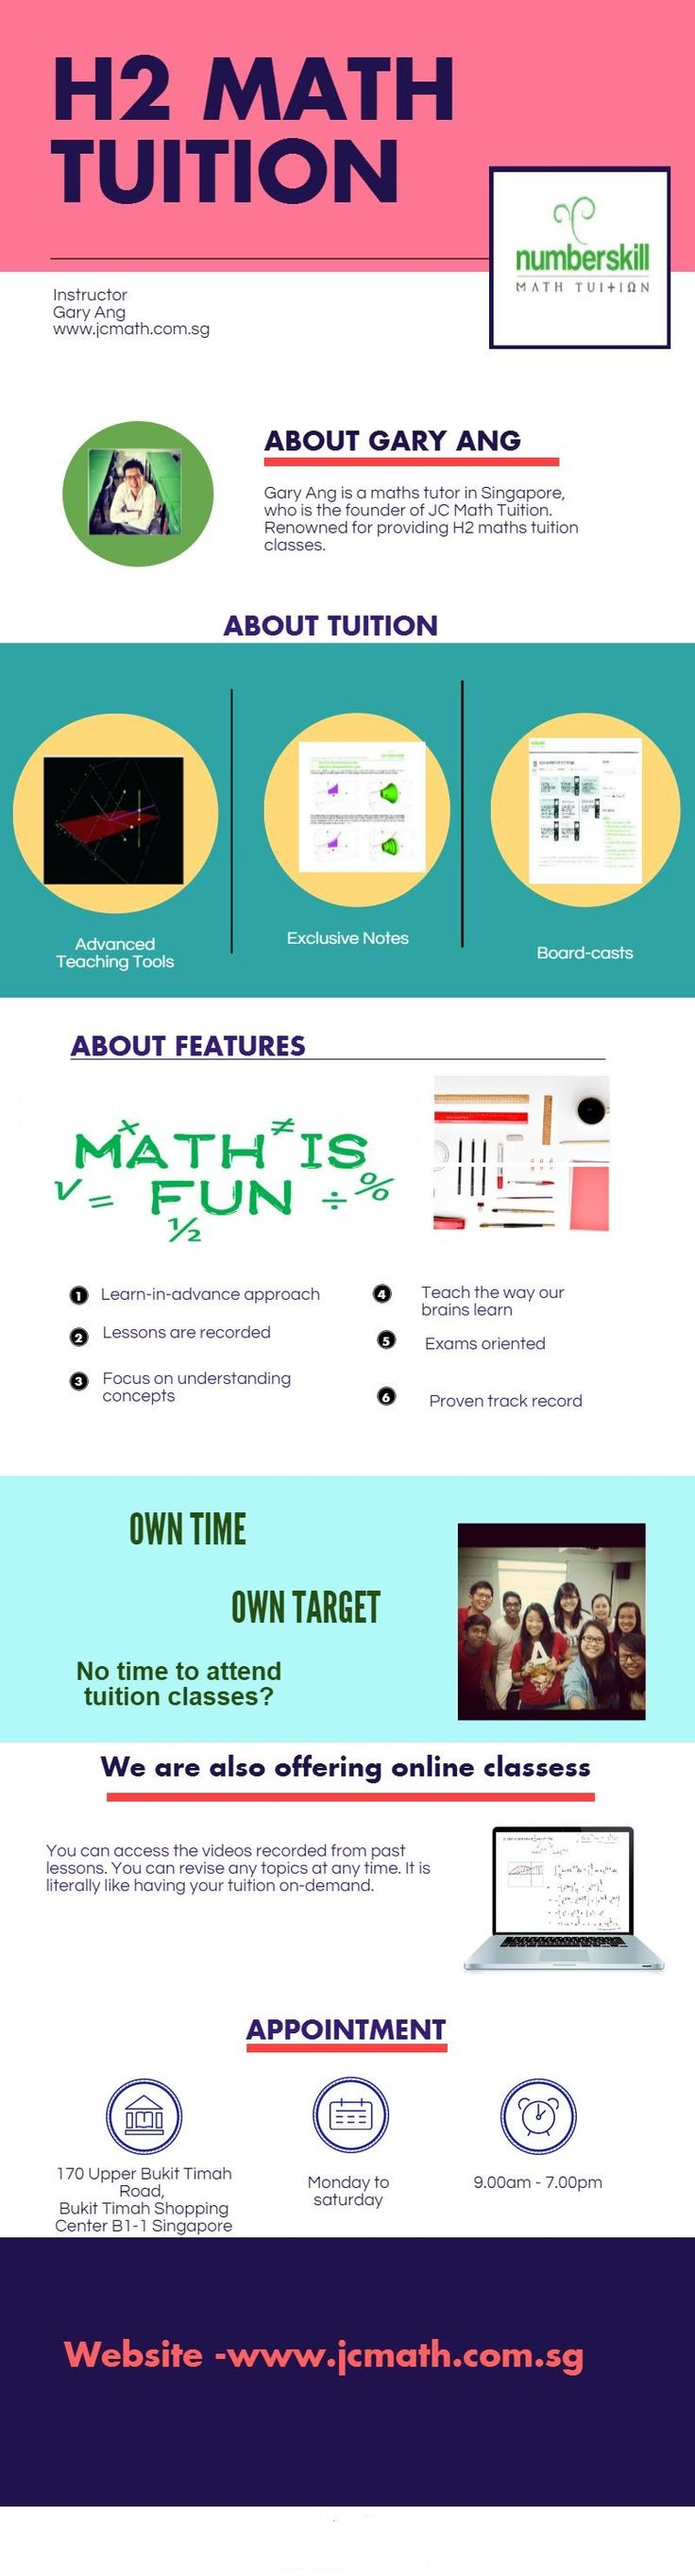 10 best H2 Maths Tuition images on Pinterest | Maths, Math and ...